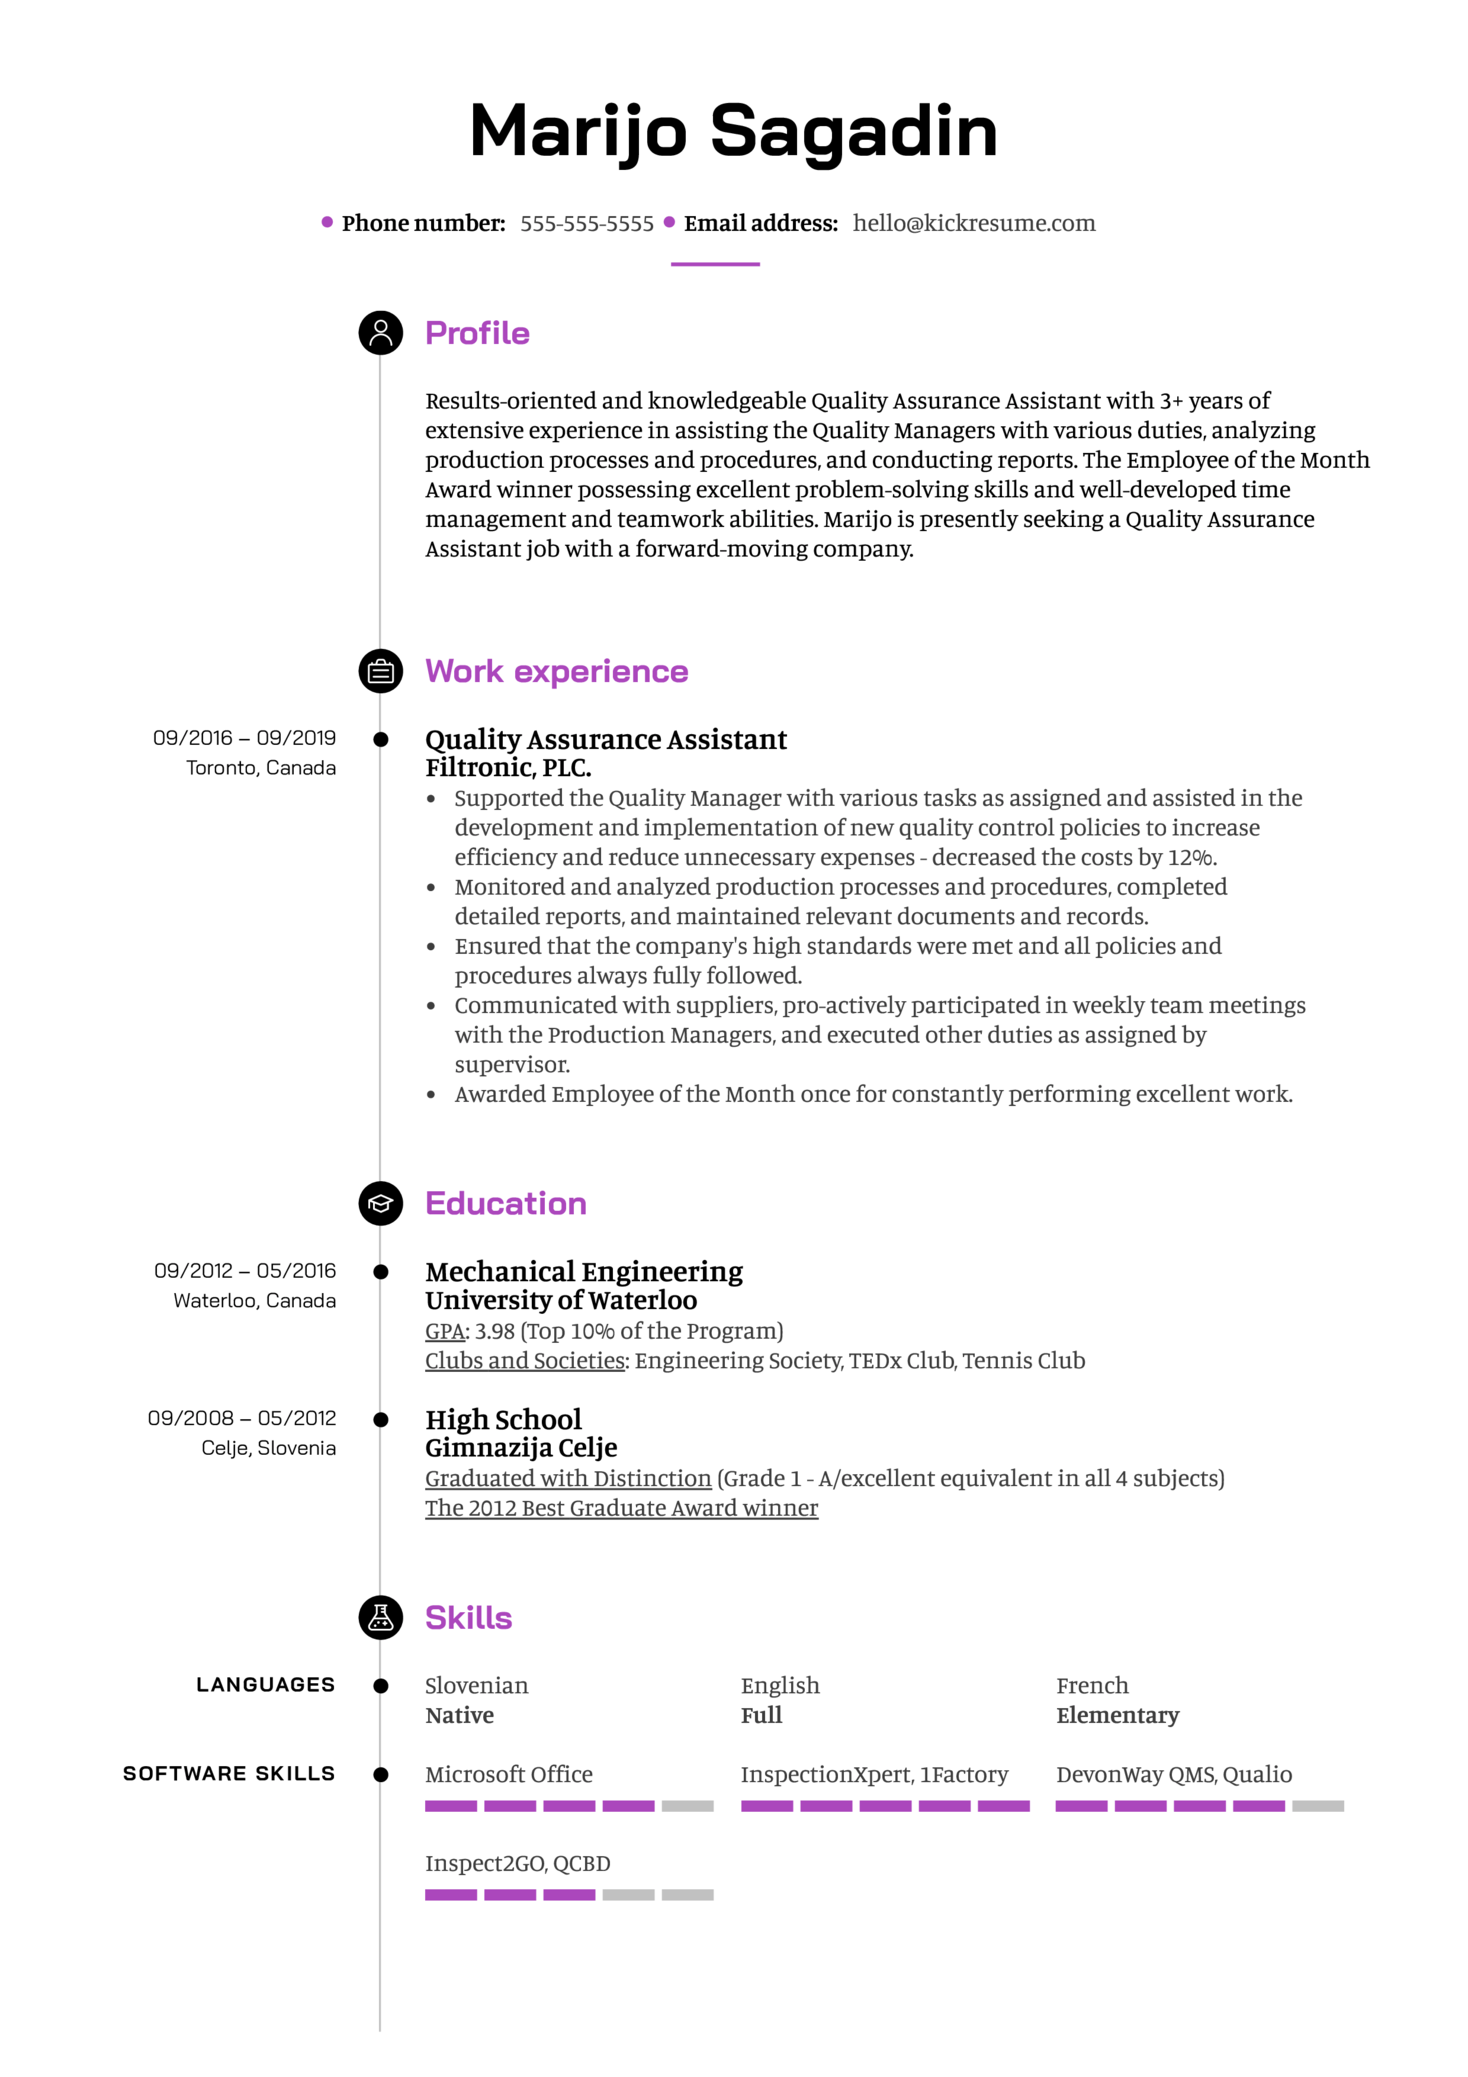 Quality Assurance Assistant Resume Example (parte 1)